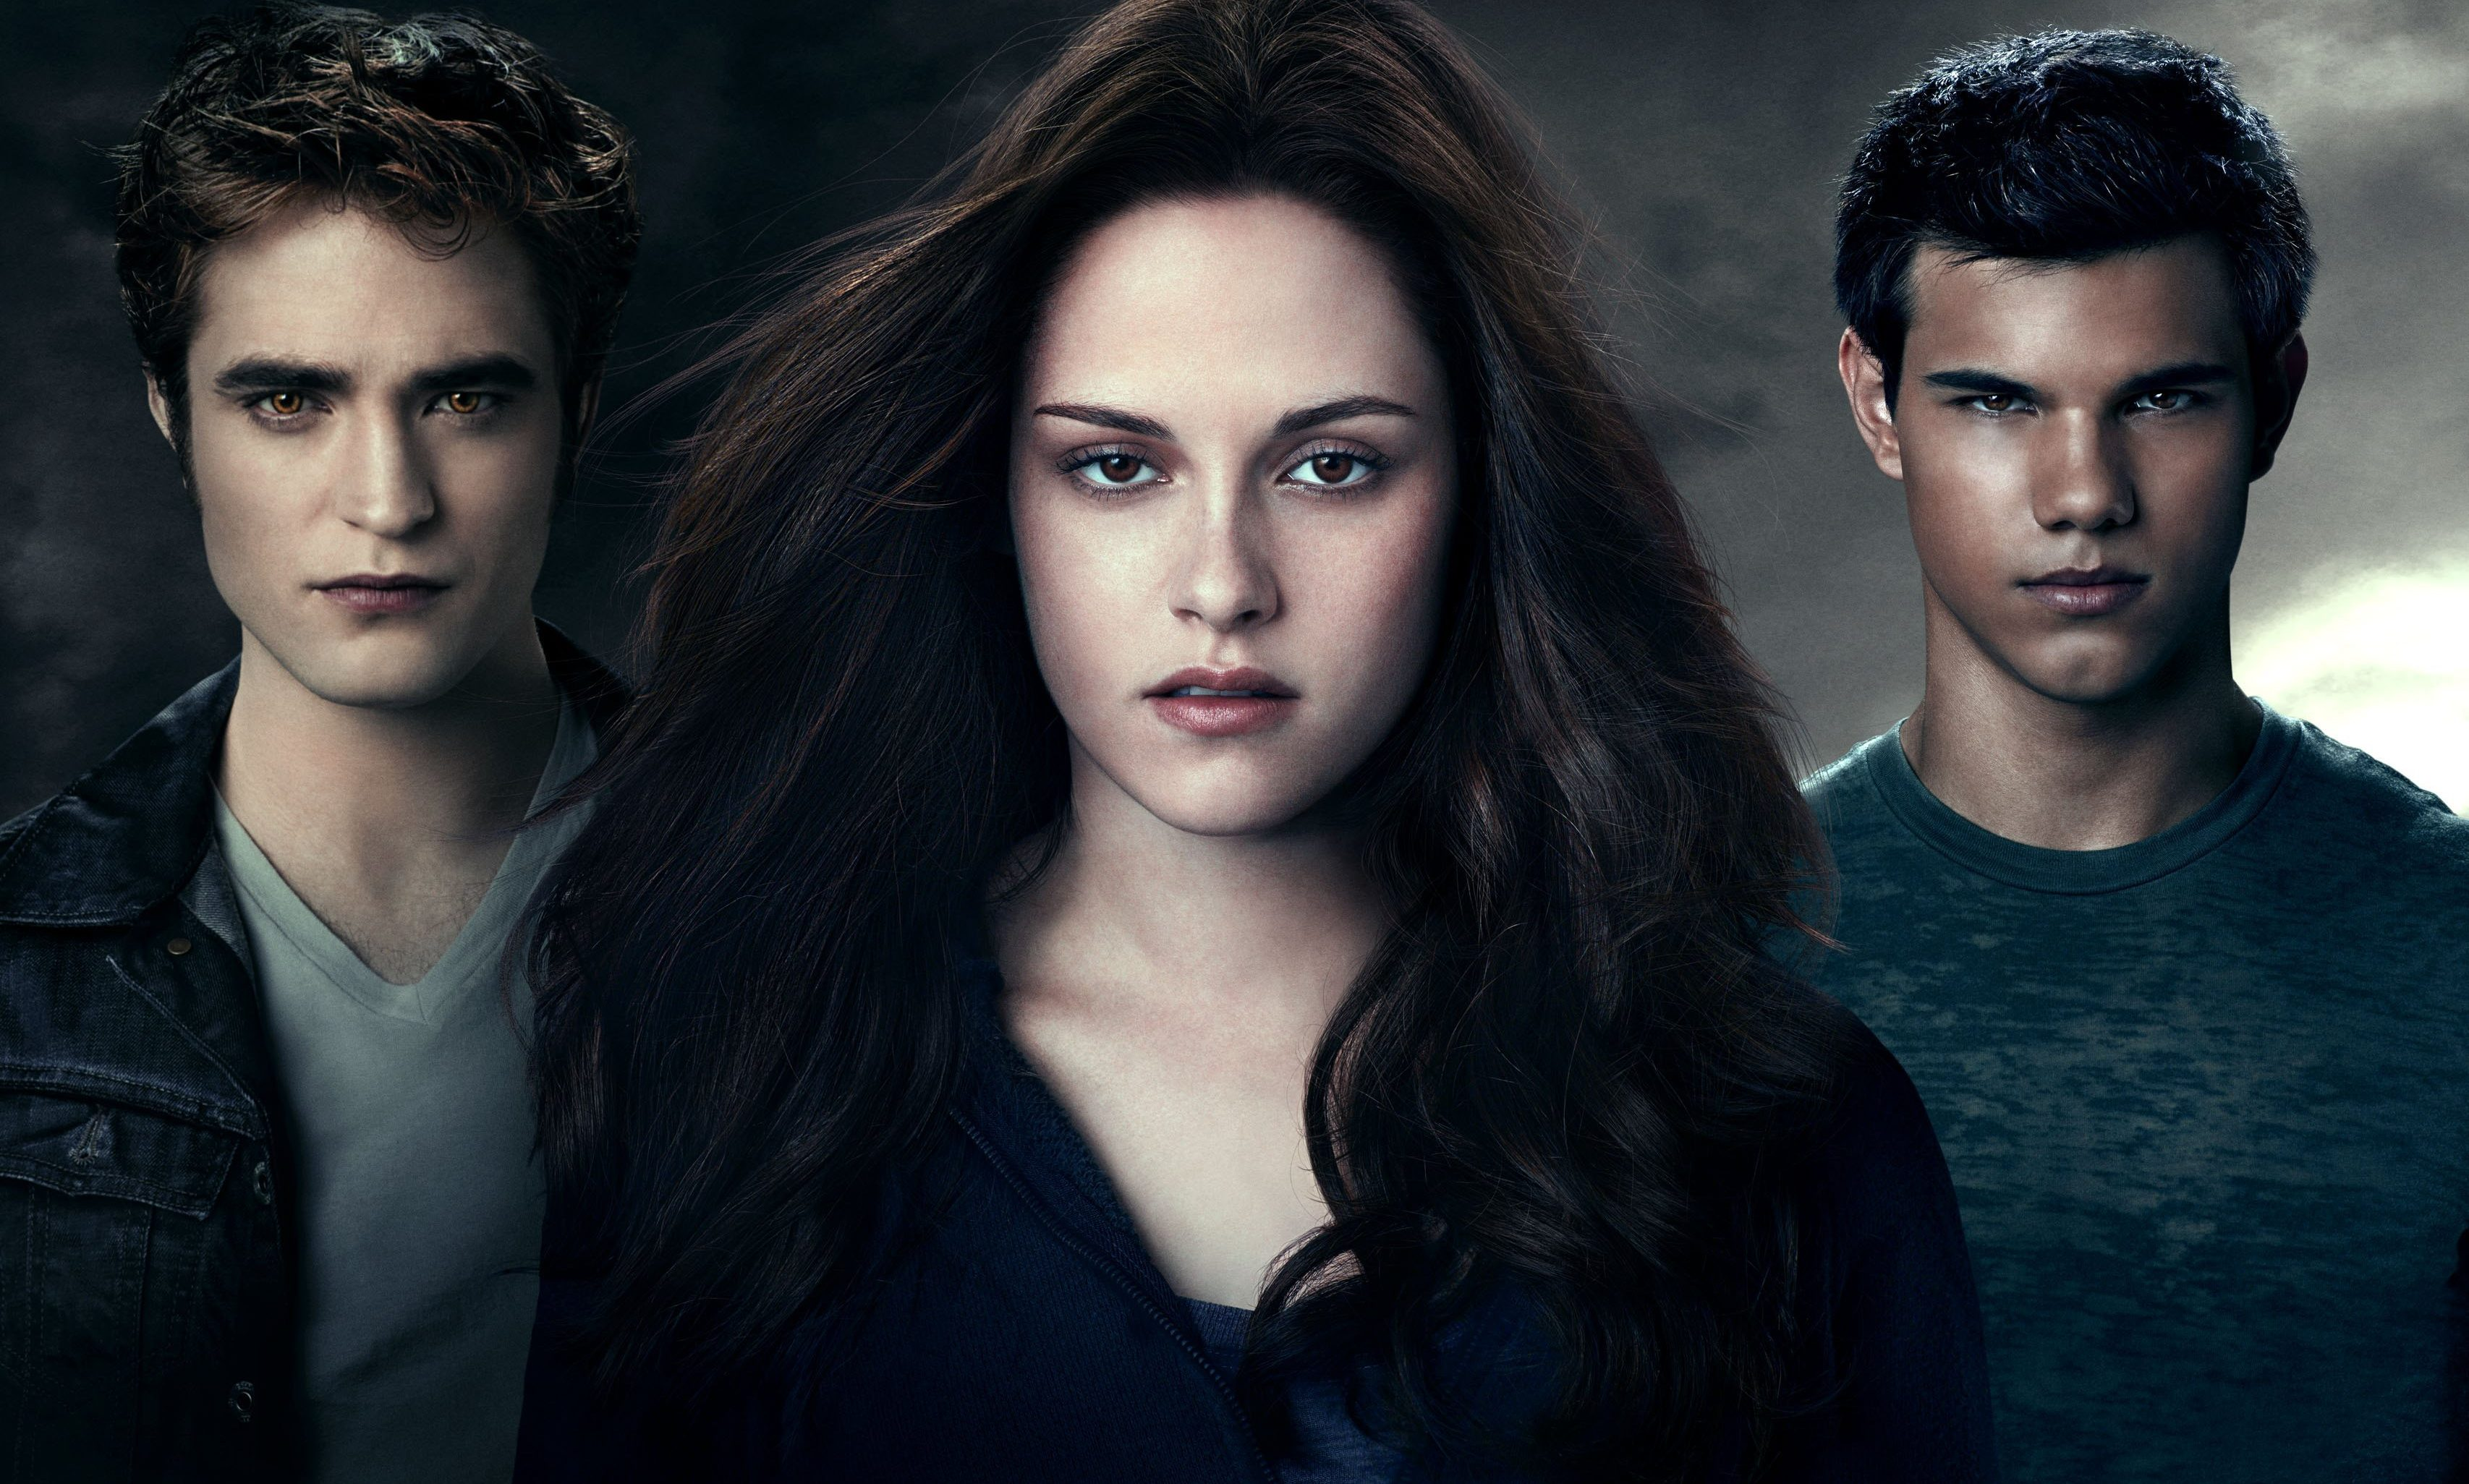 Twilight Saga: Eclipse. Edward, Bella and Jacob